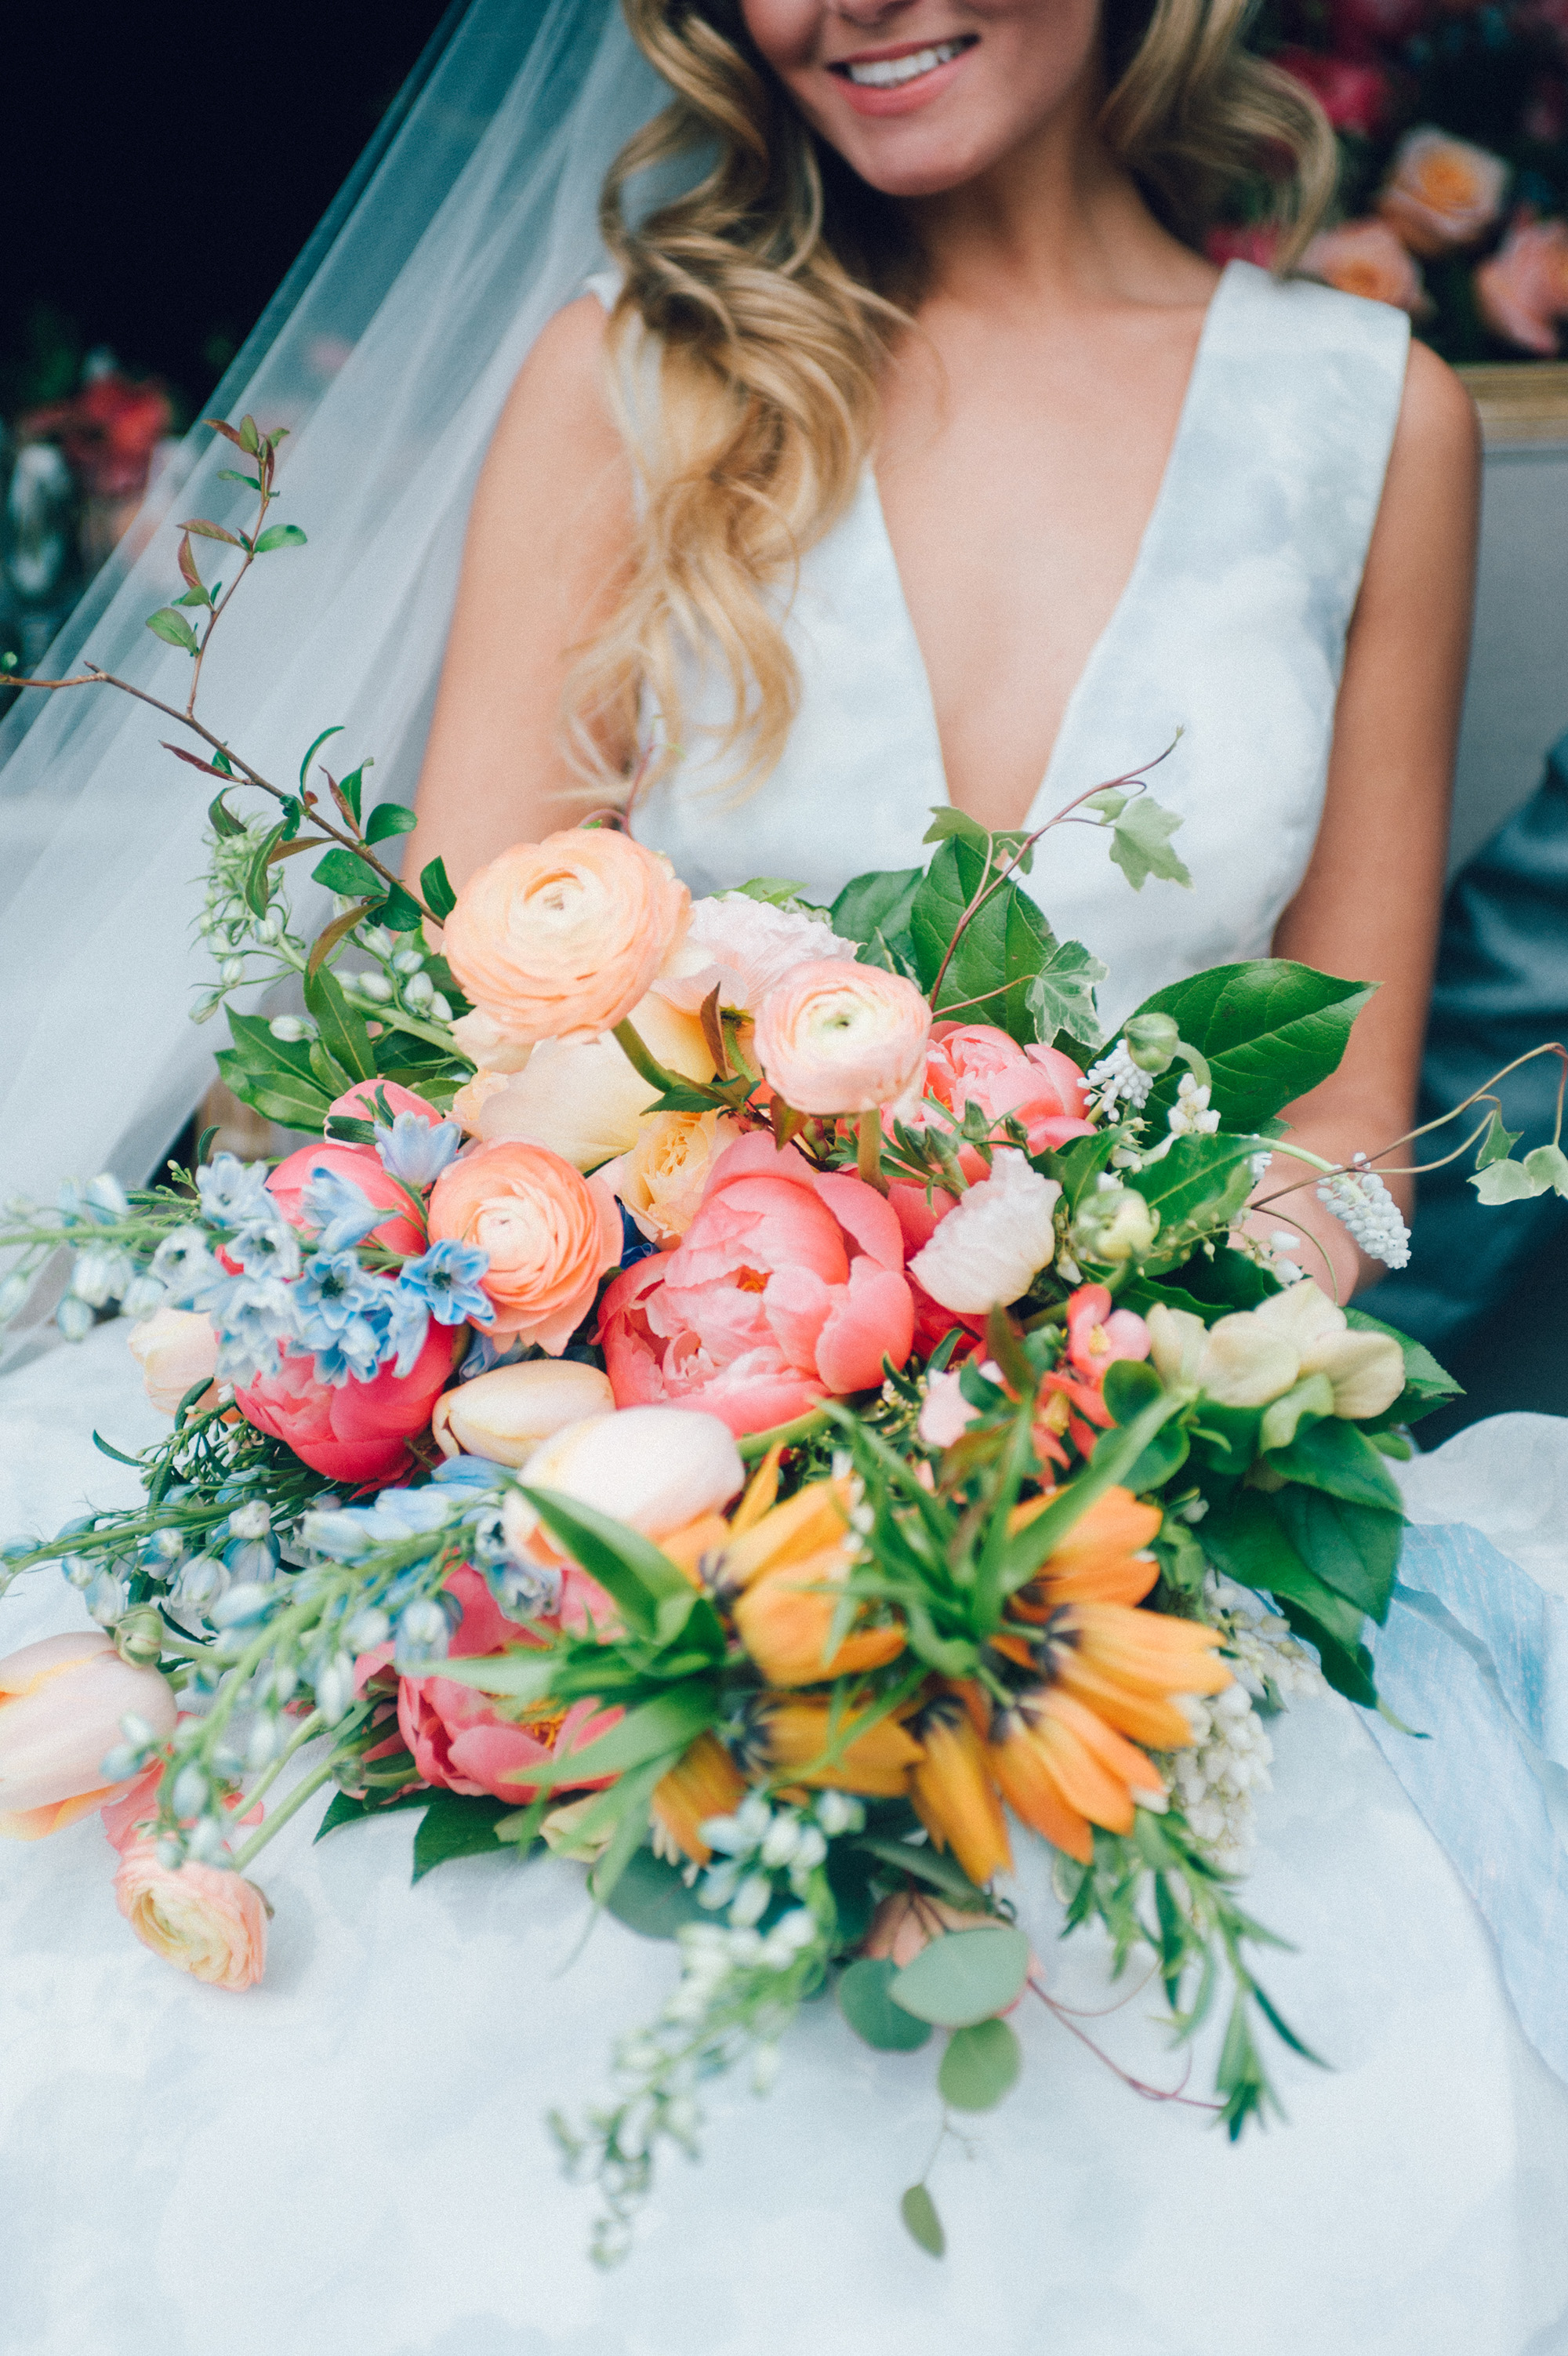 Loose, Romantic Pink Bouquet with Touches of Orange and Blue